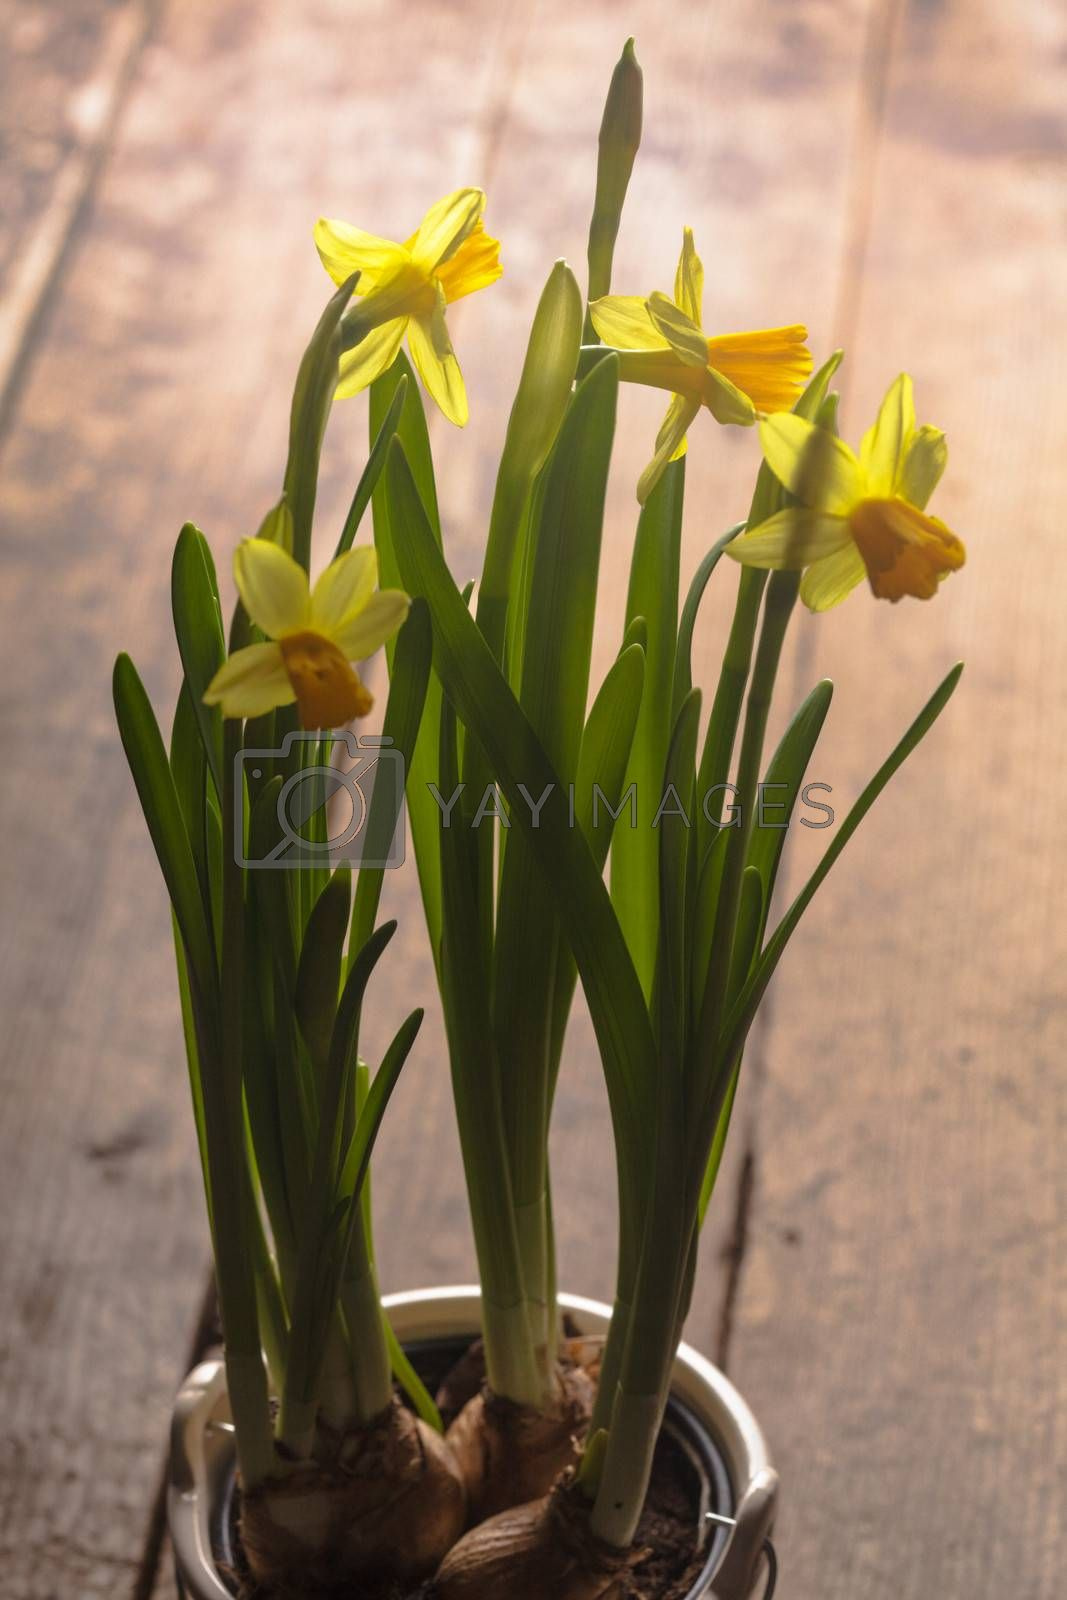 First spring flowers - yellow daffodil on the table